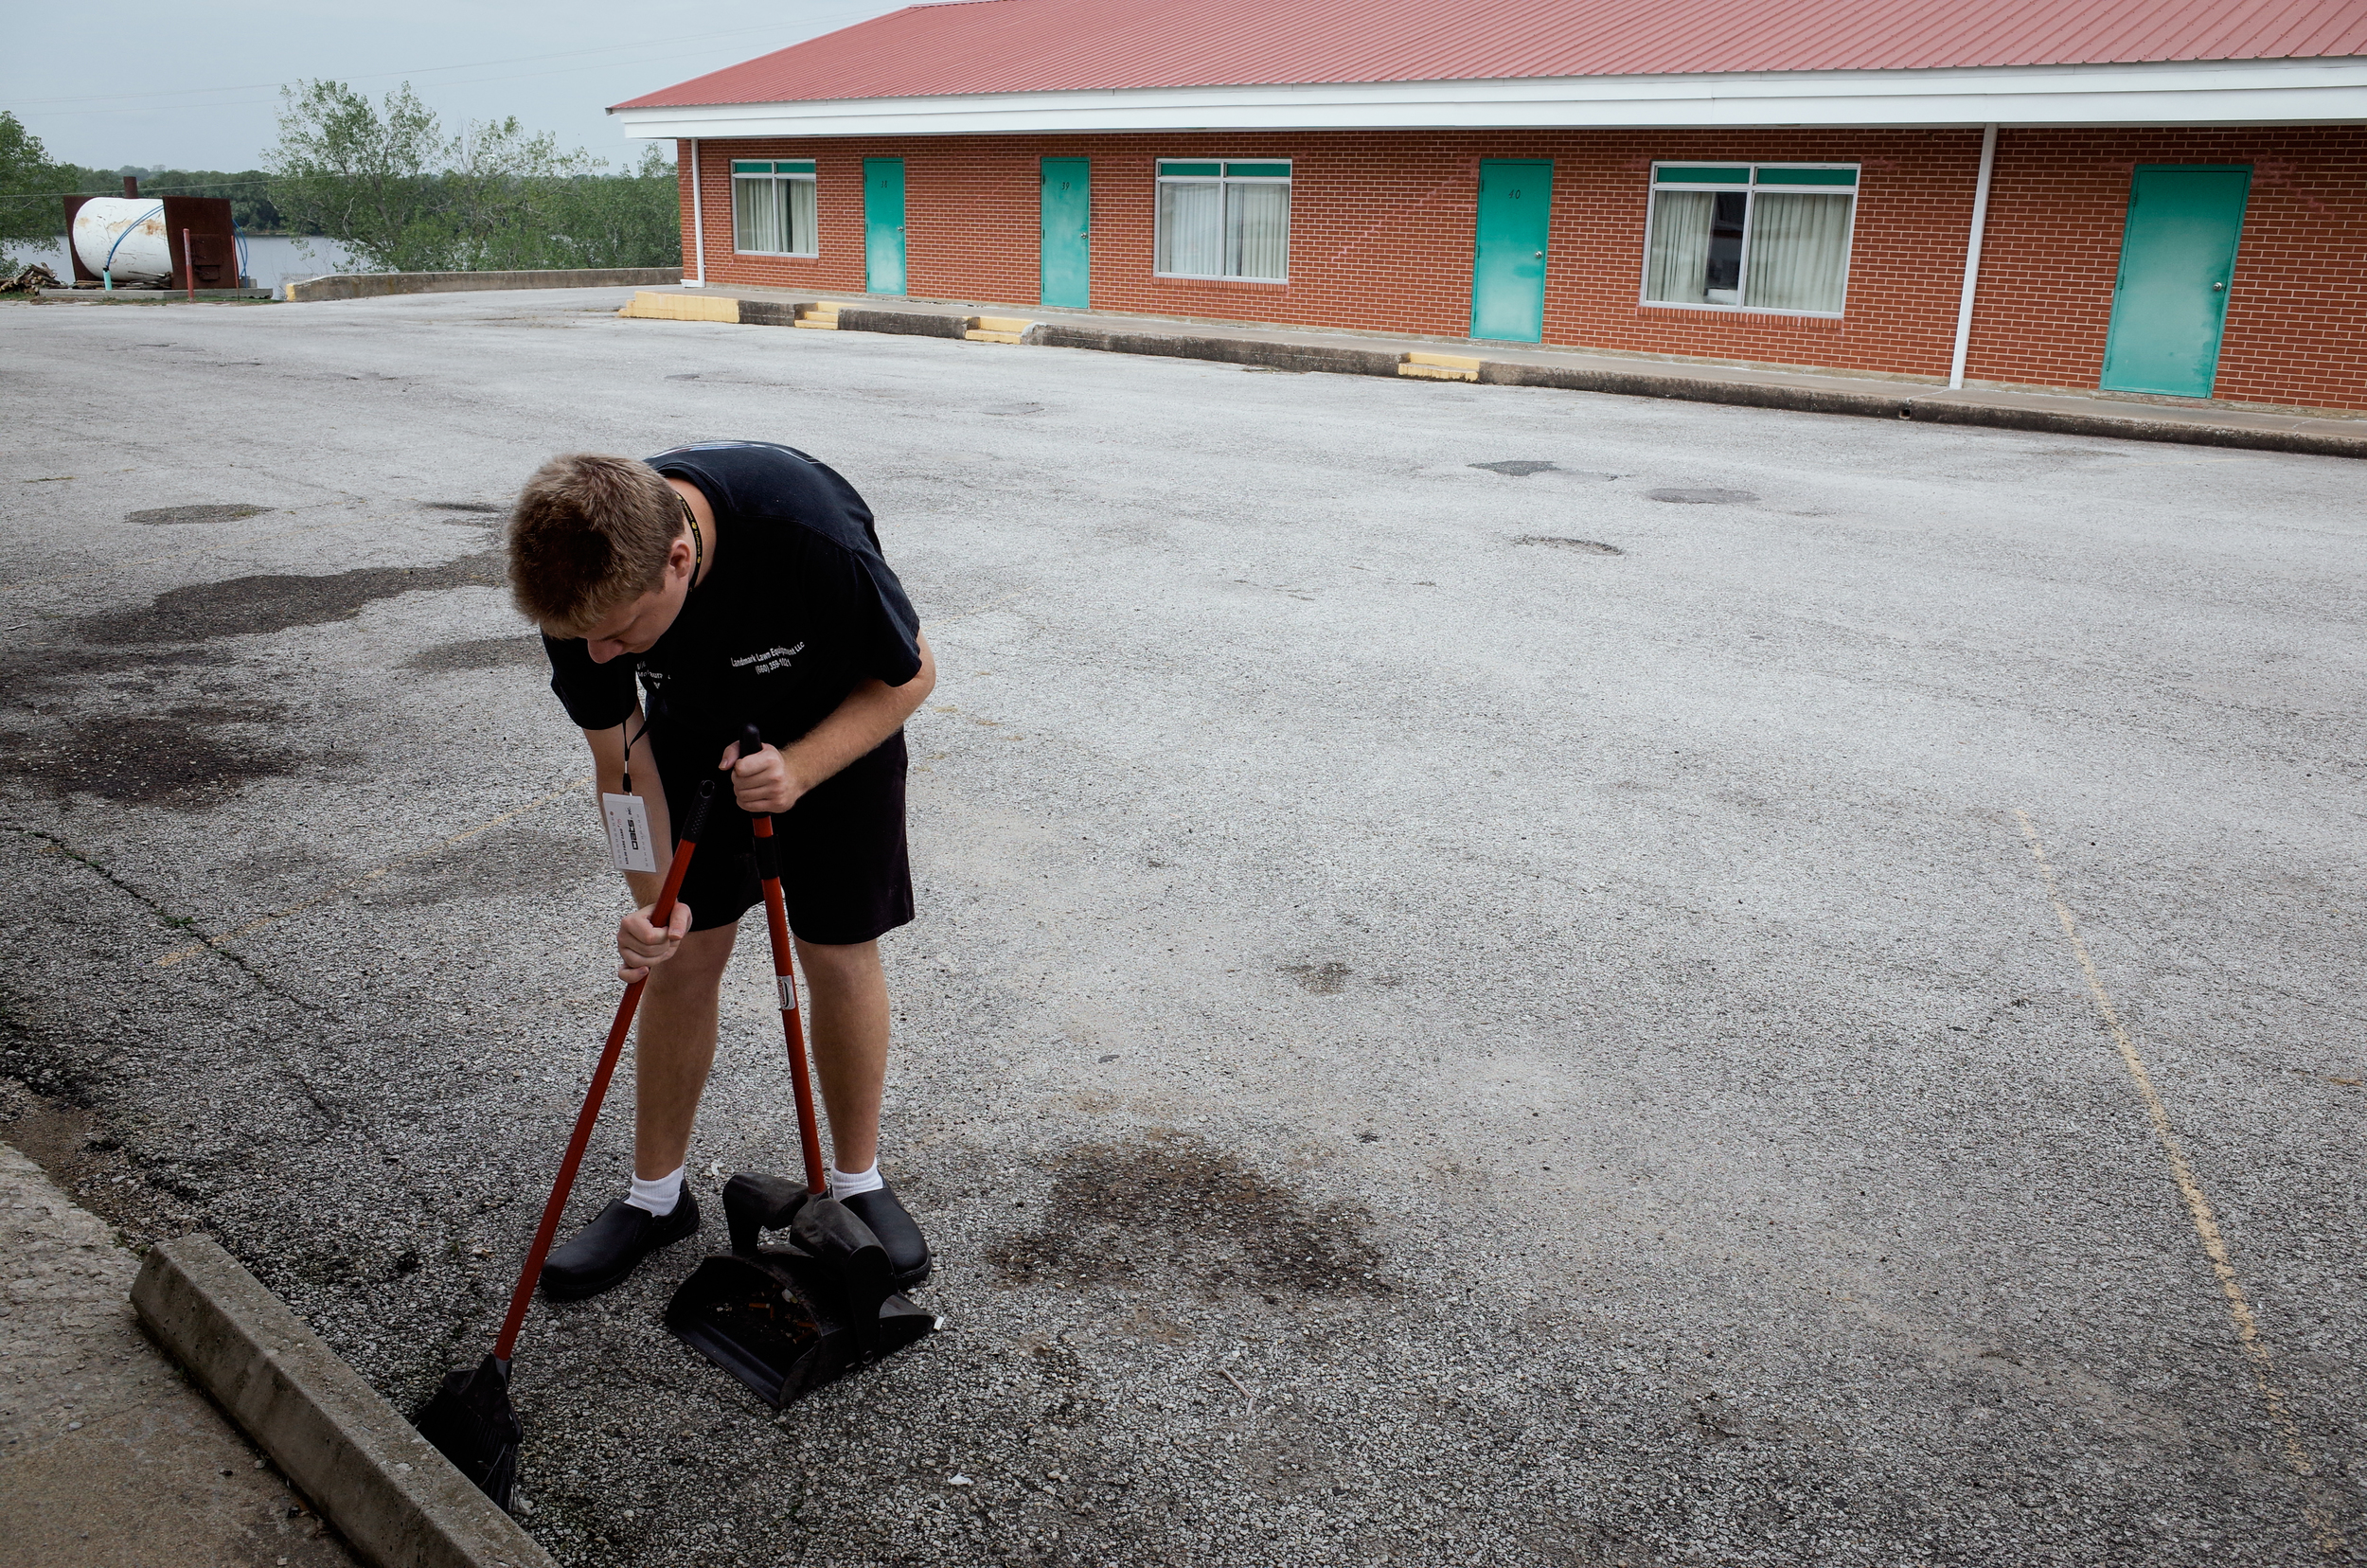 Trenton, Missouri. 2013.  Dalton sweeps at Lakeview Motor Lodge where he works one day a week helping in the restaurant and other tasks.